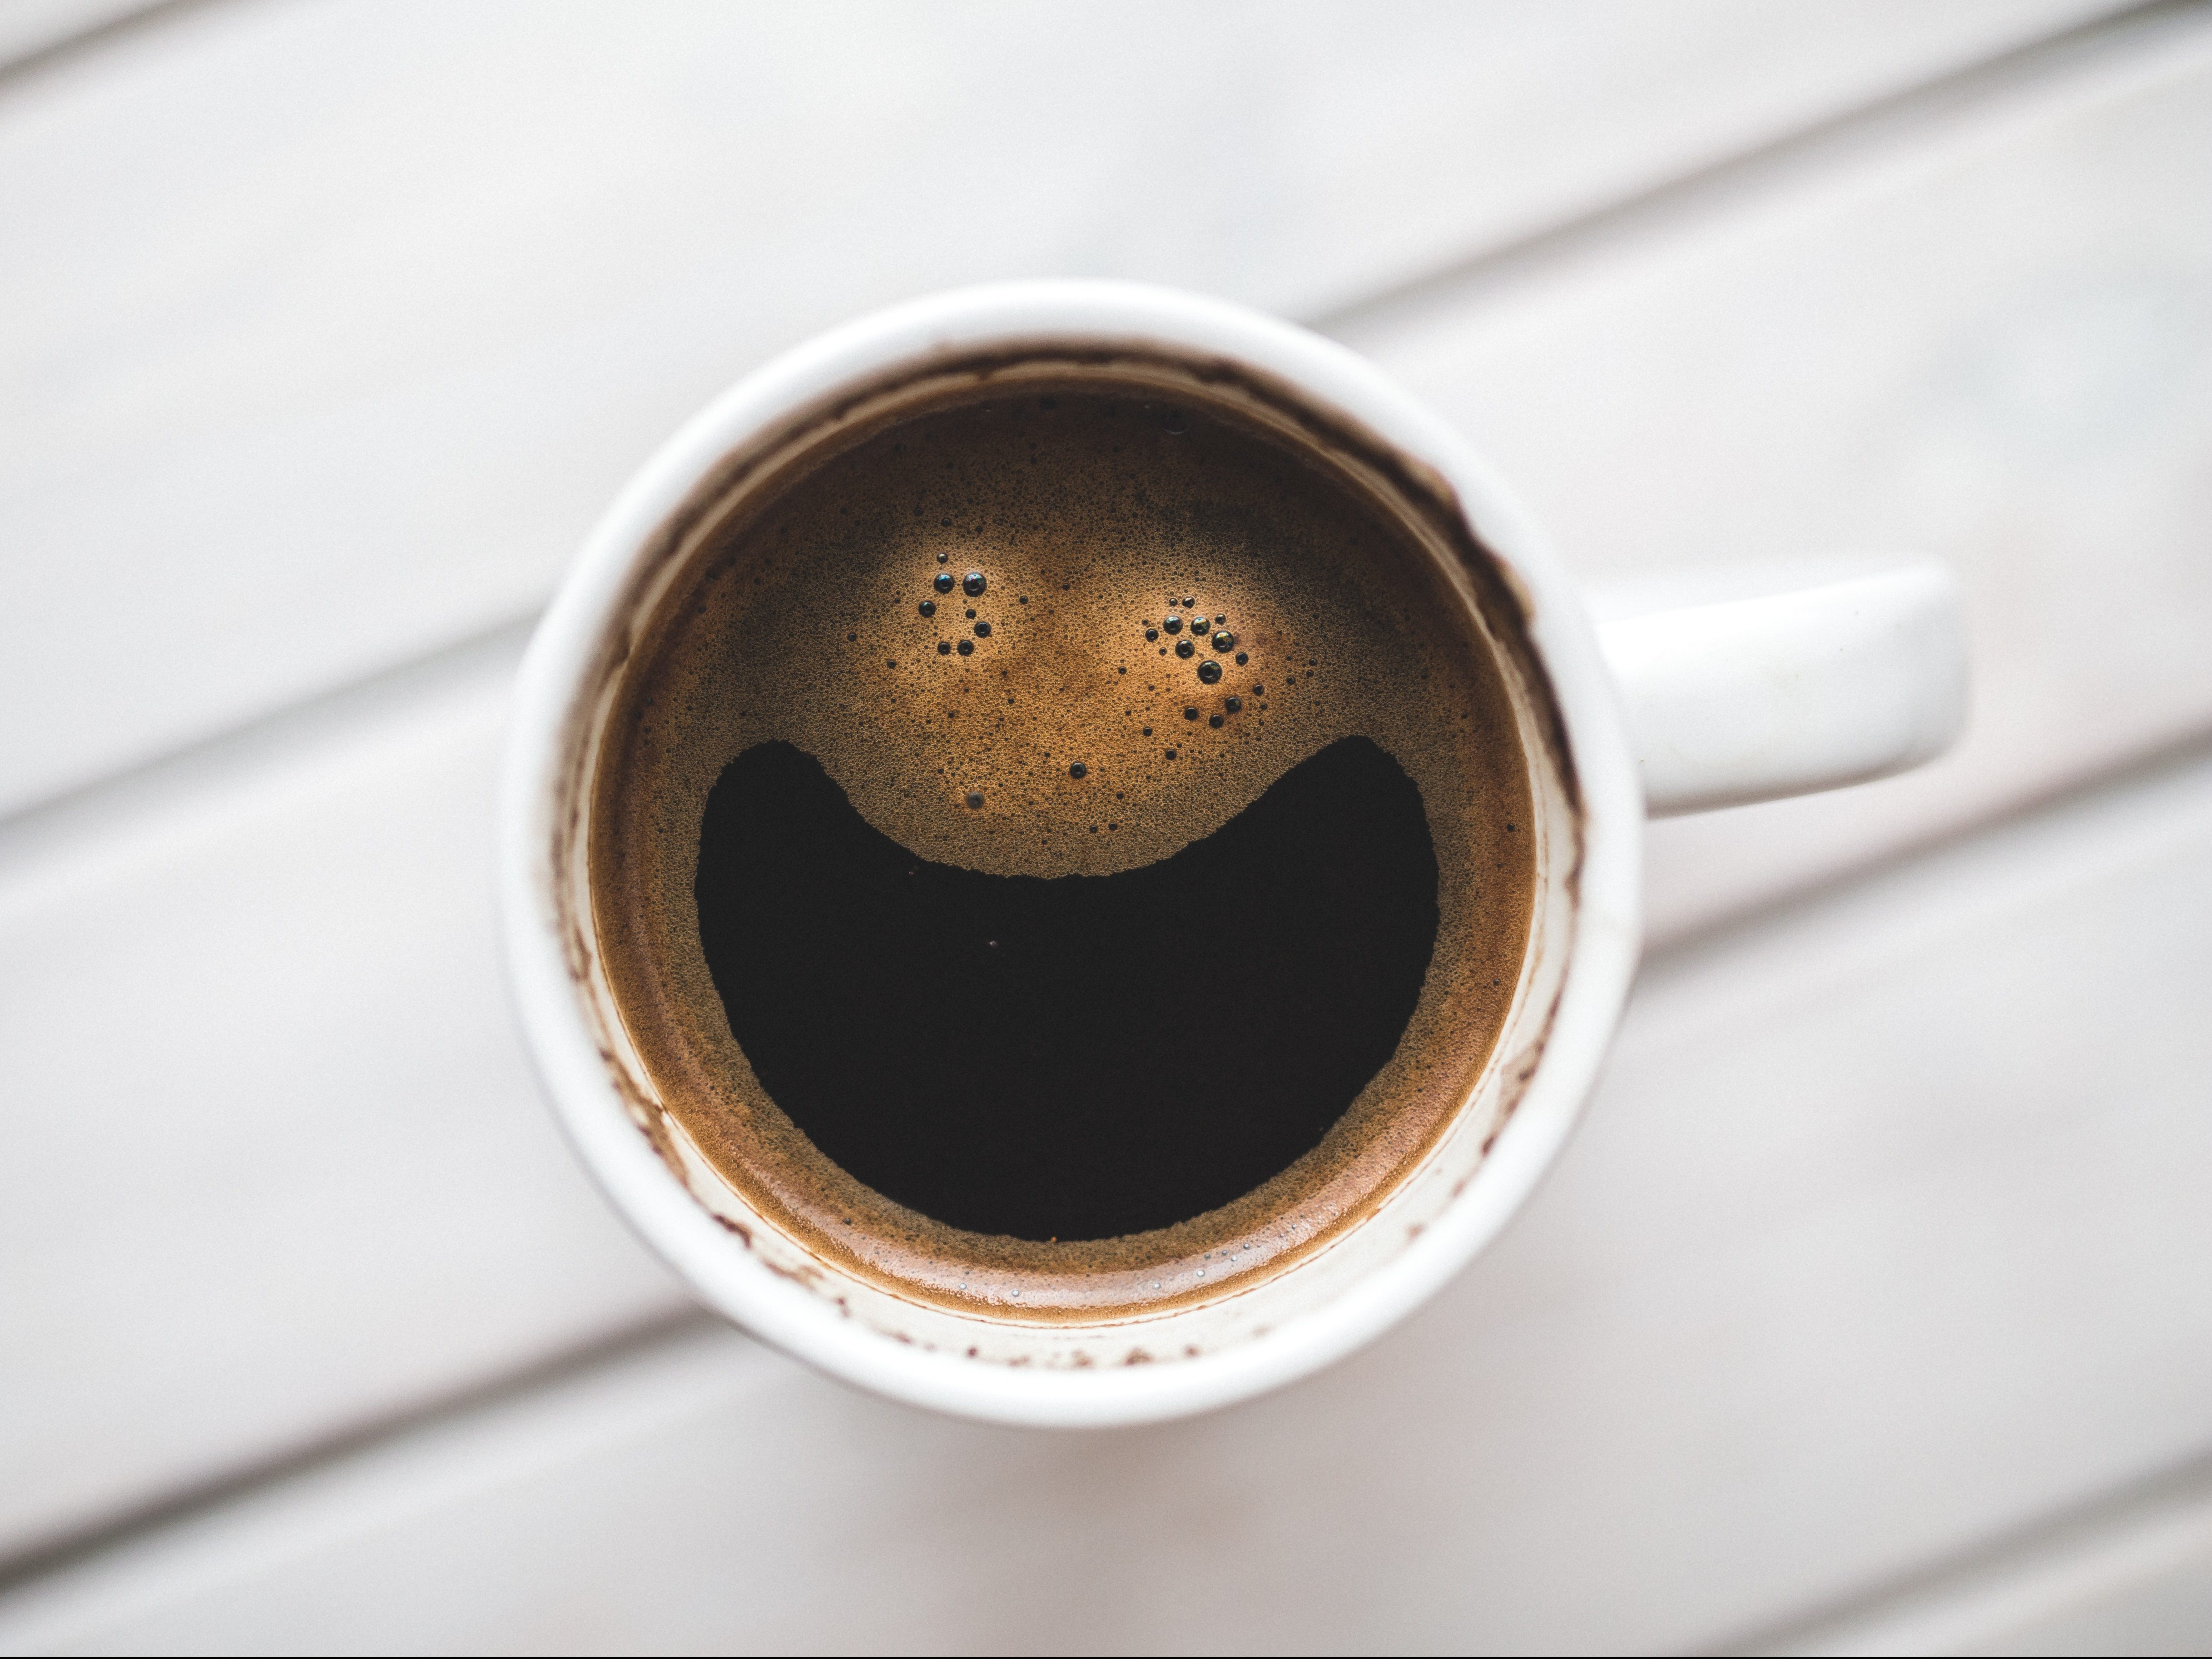 coffee in a mug in the shape of a smiley face